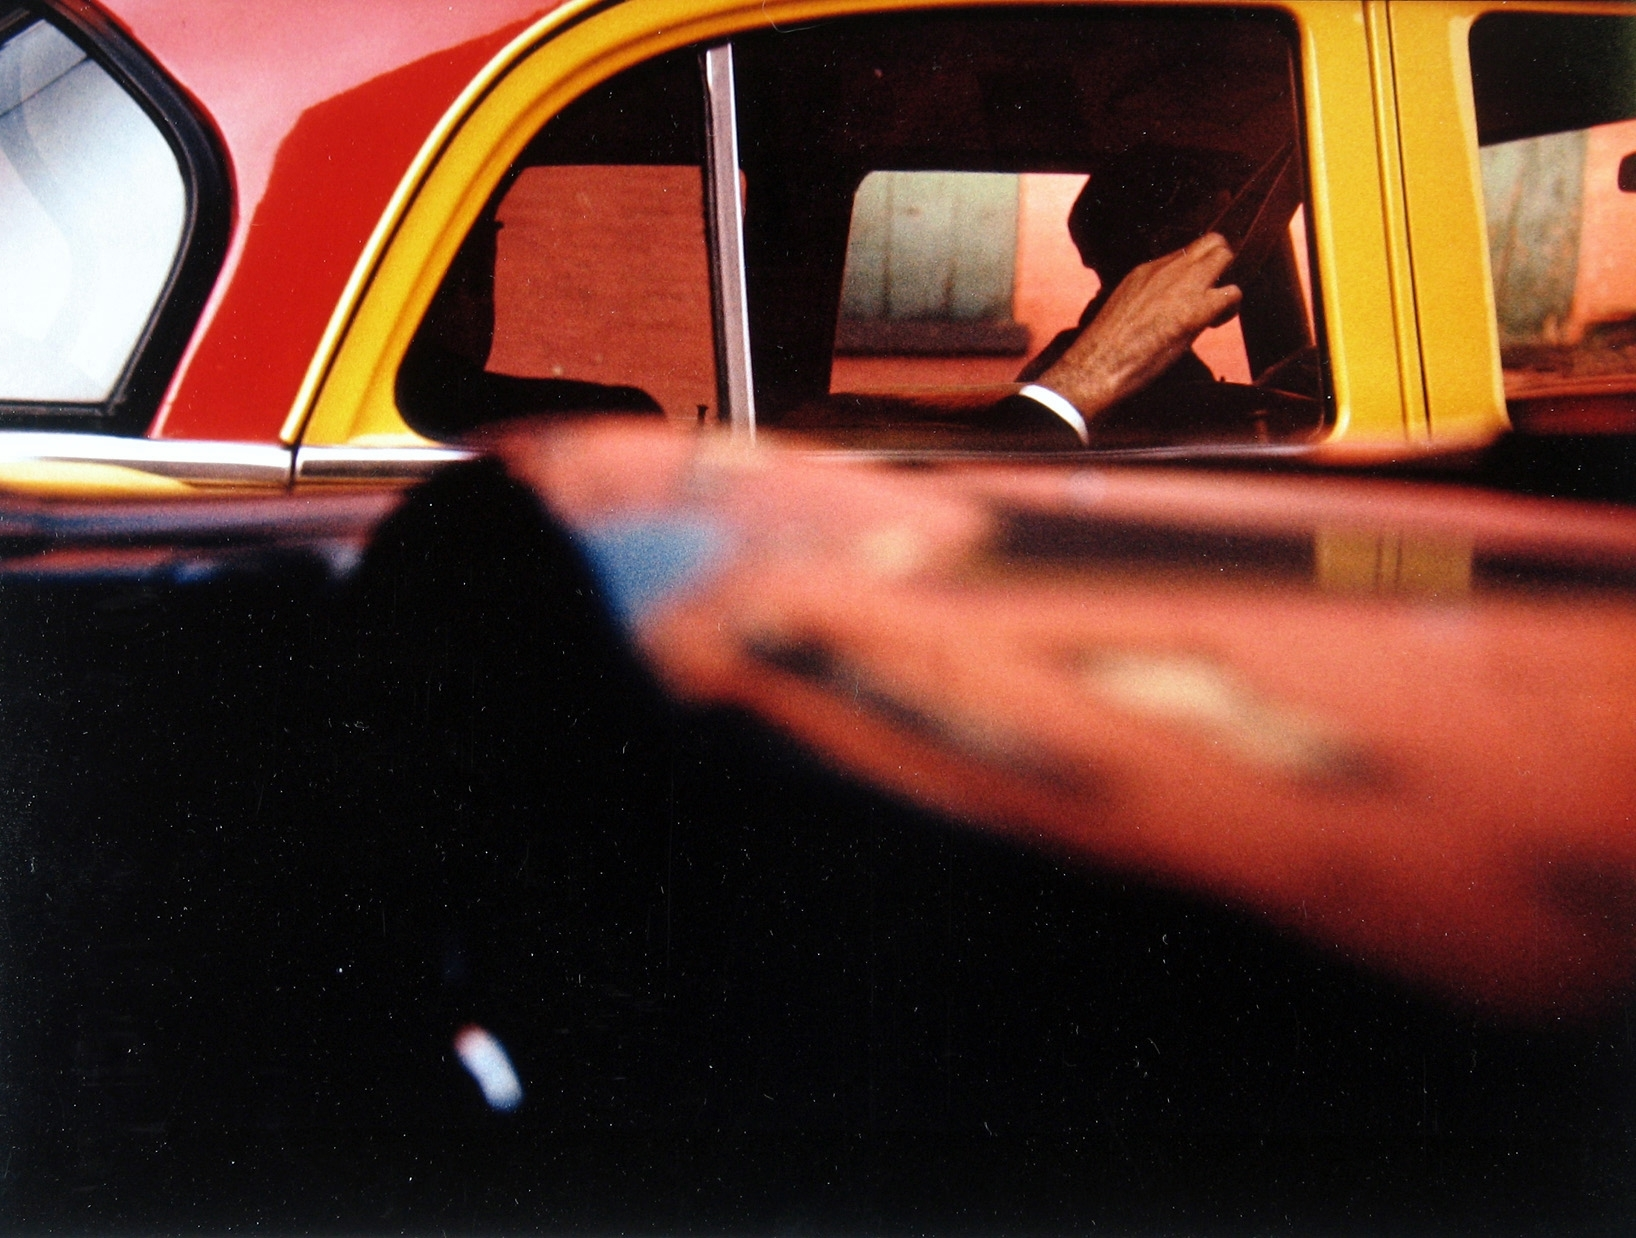 Saul Leiter. In Search of Beauty